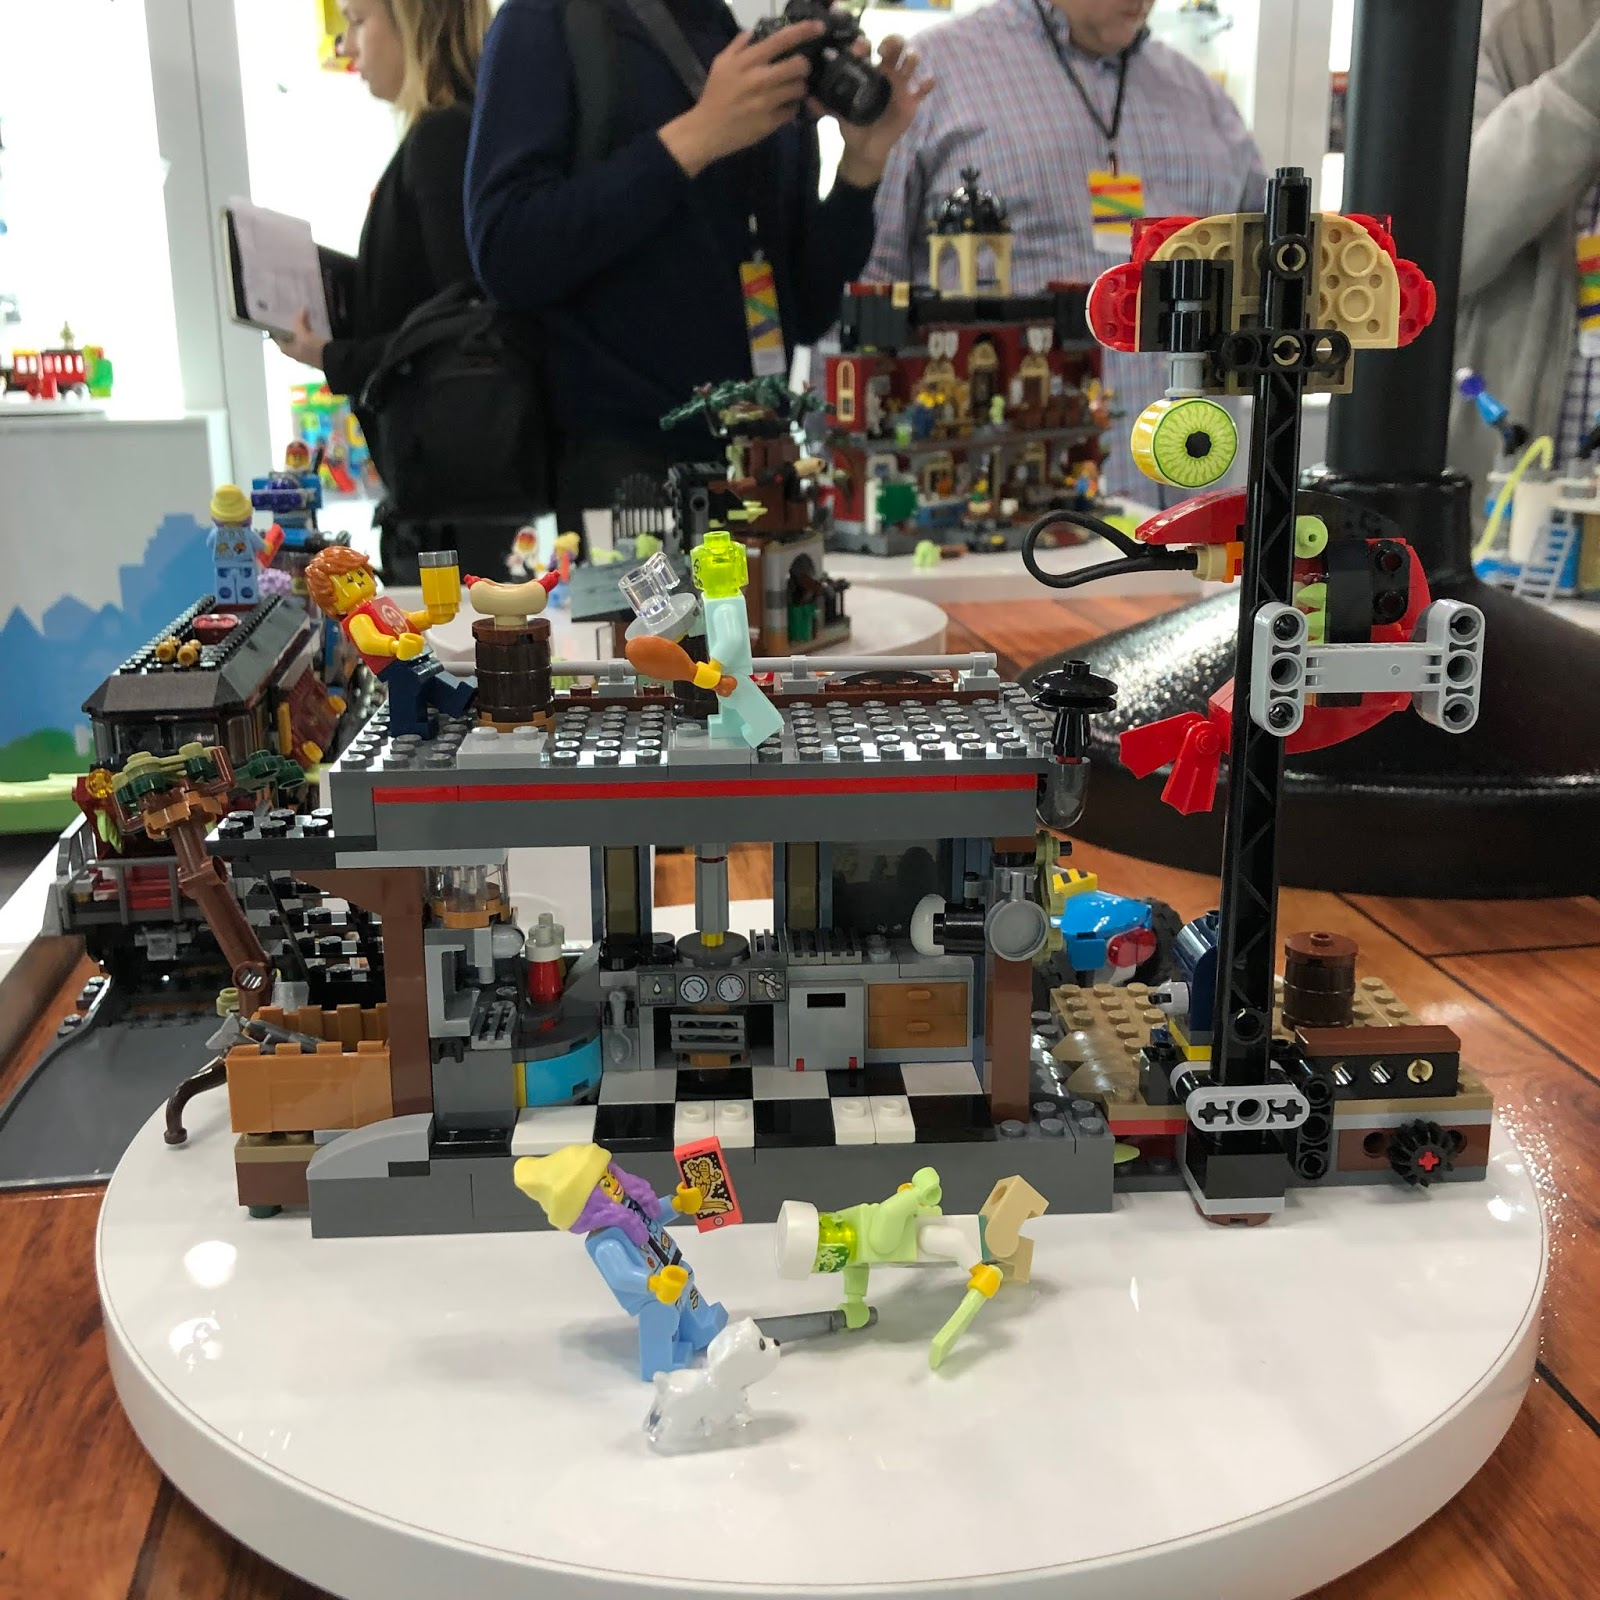 Haunted House Nyc Youtube: Tubey Toys Review: New York Toy Fair 2019 LEGO Hidden Side